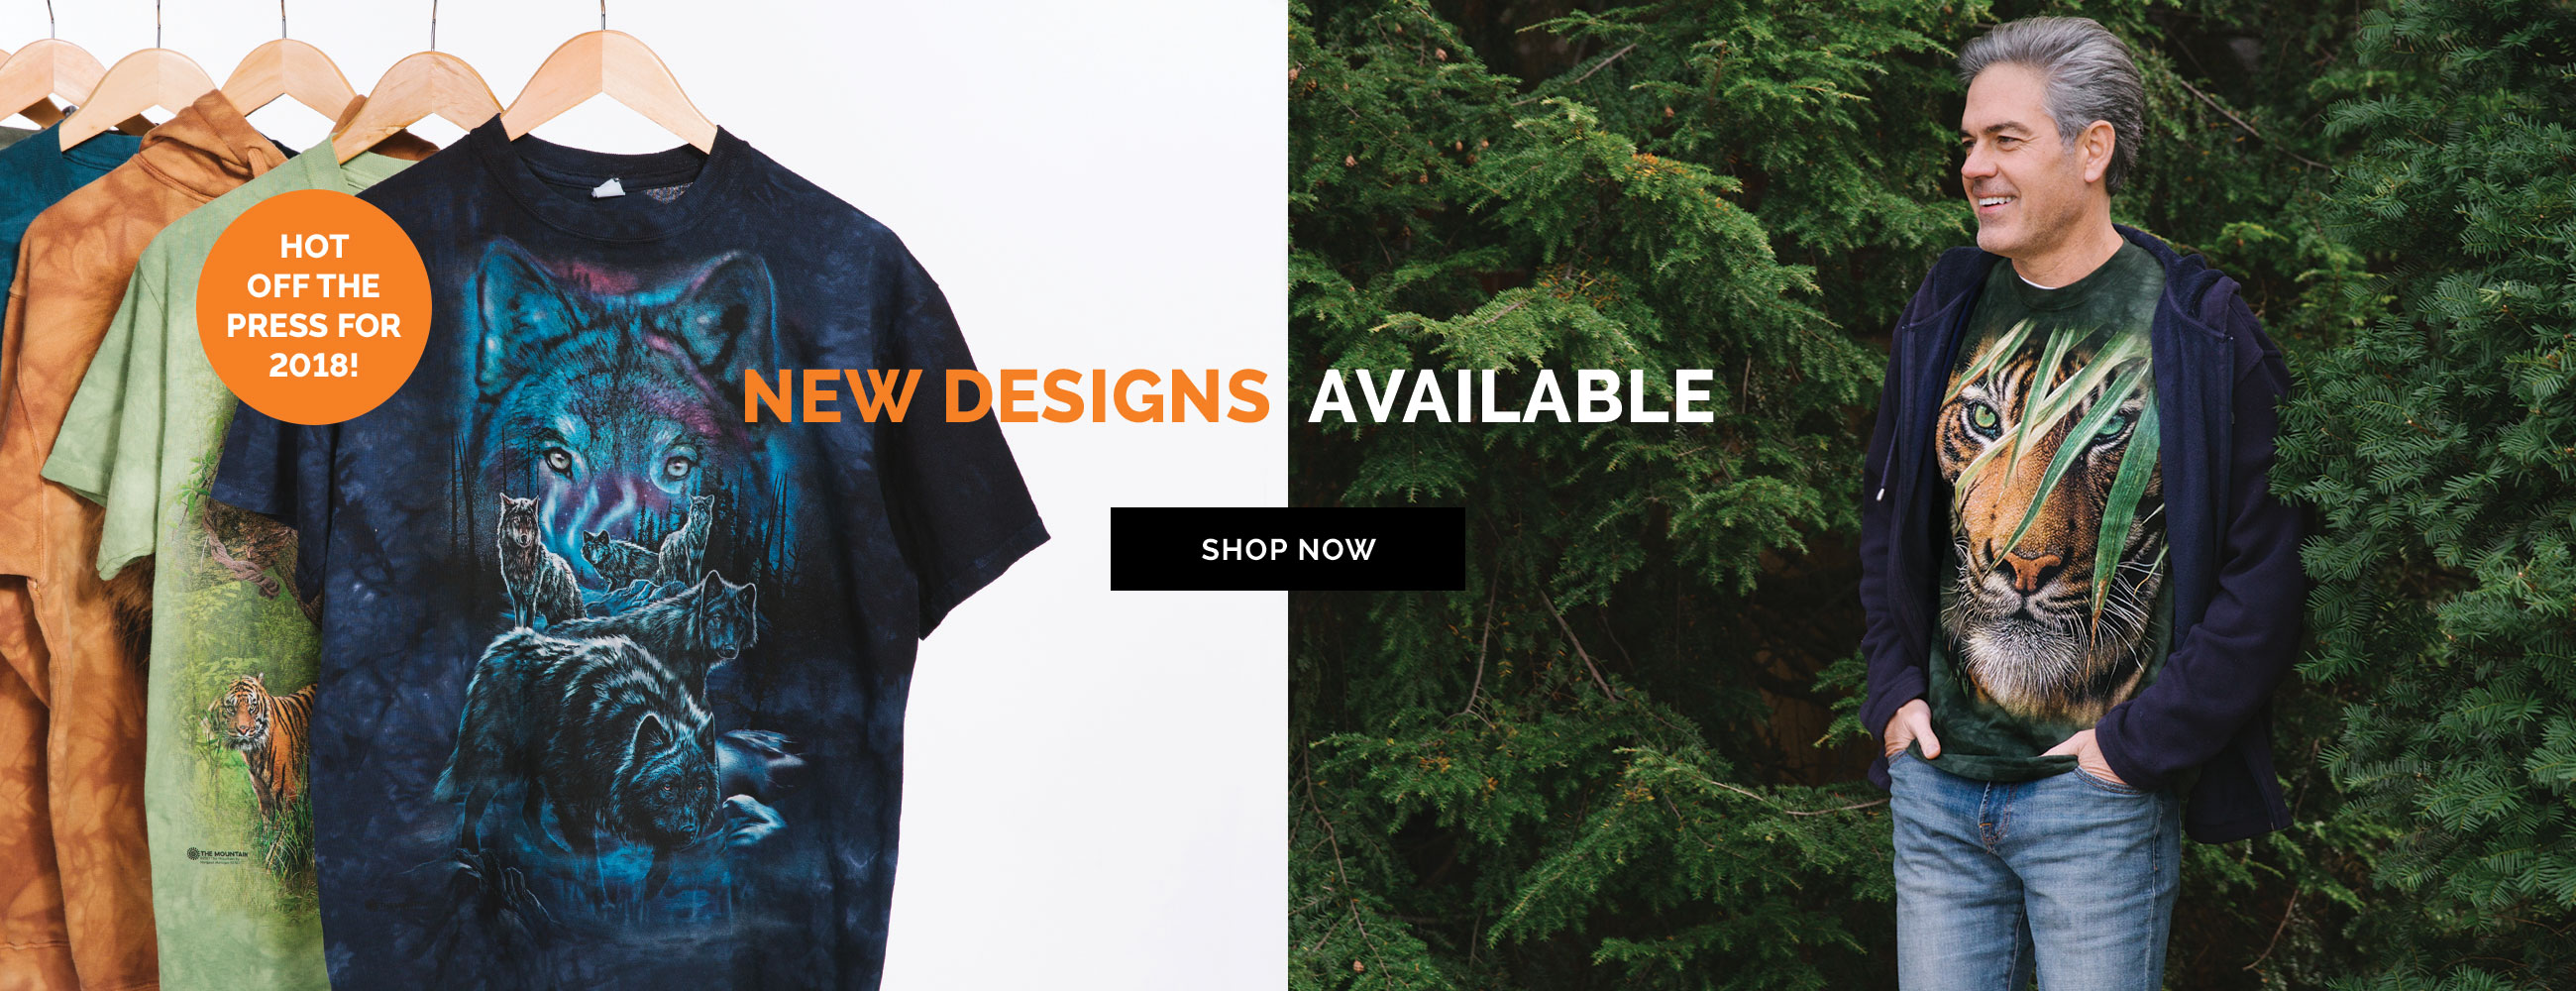 New Designs Available